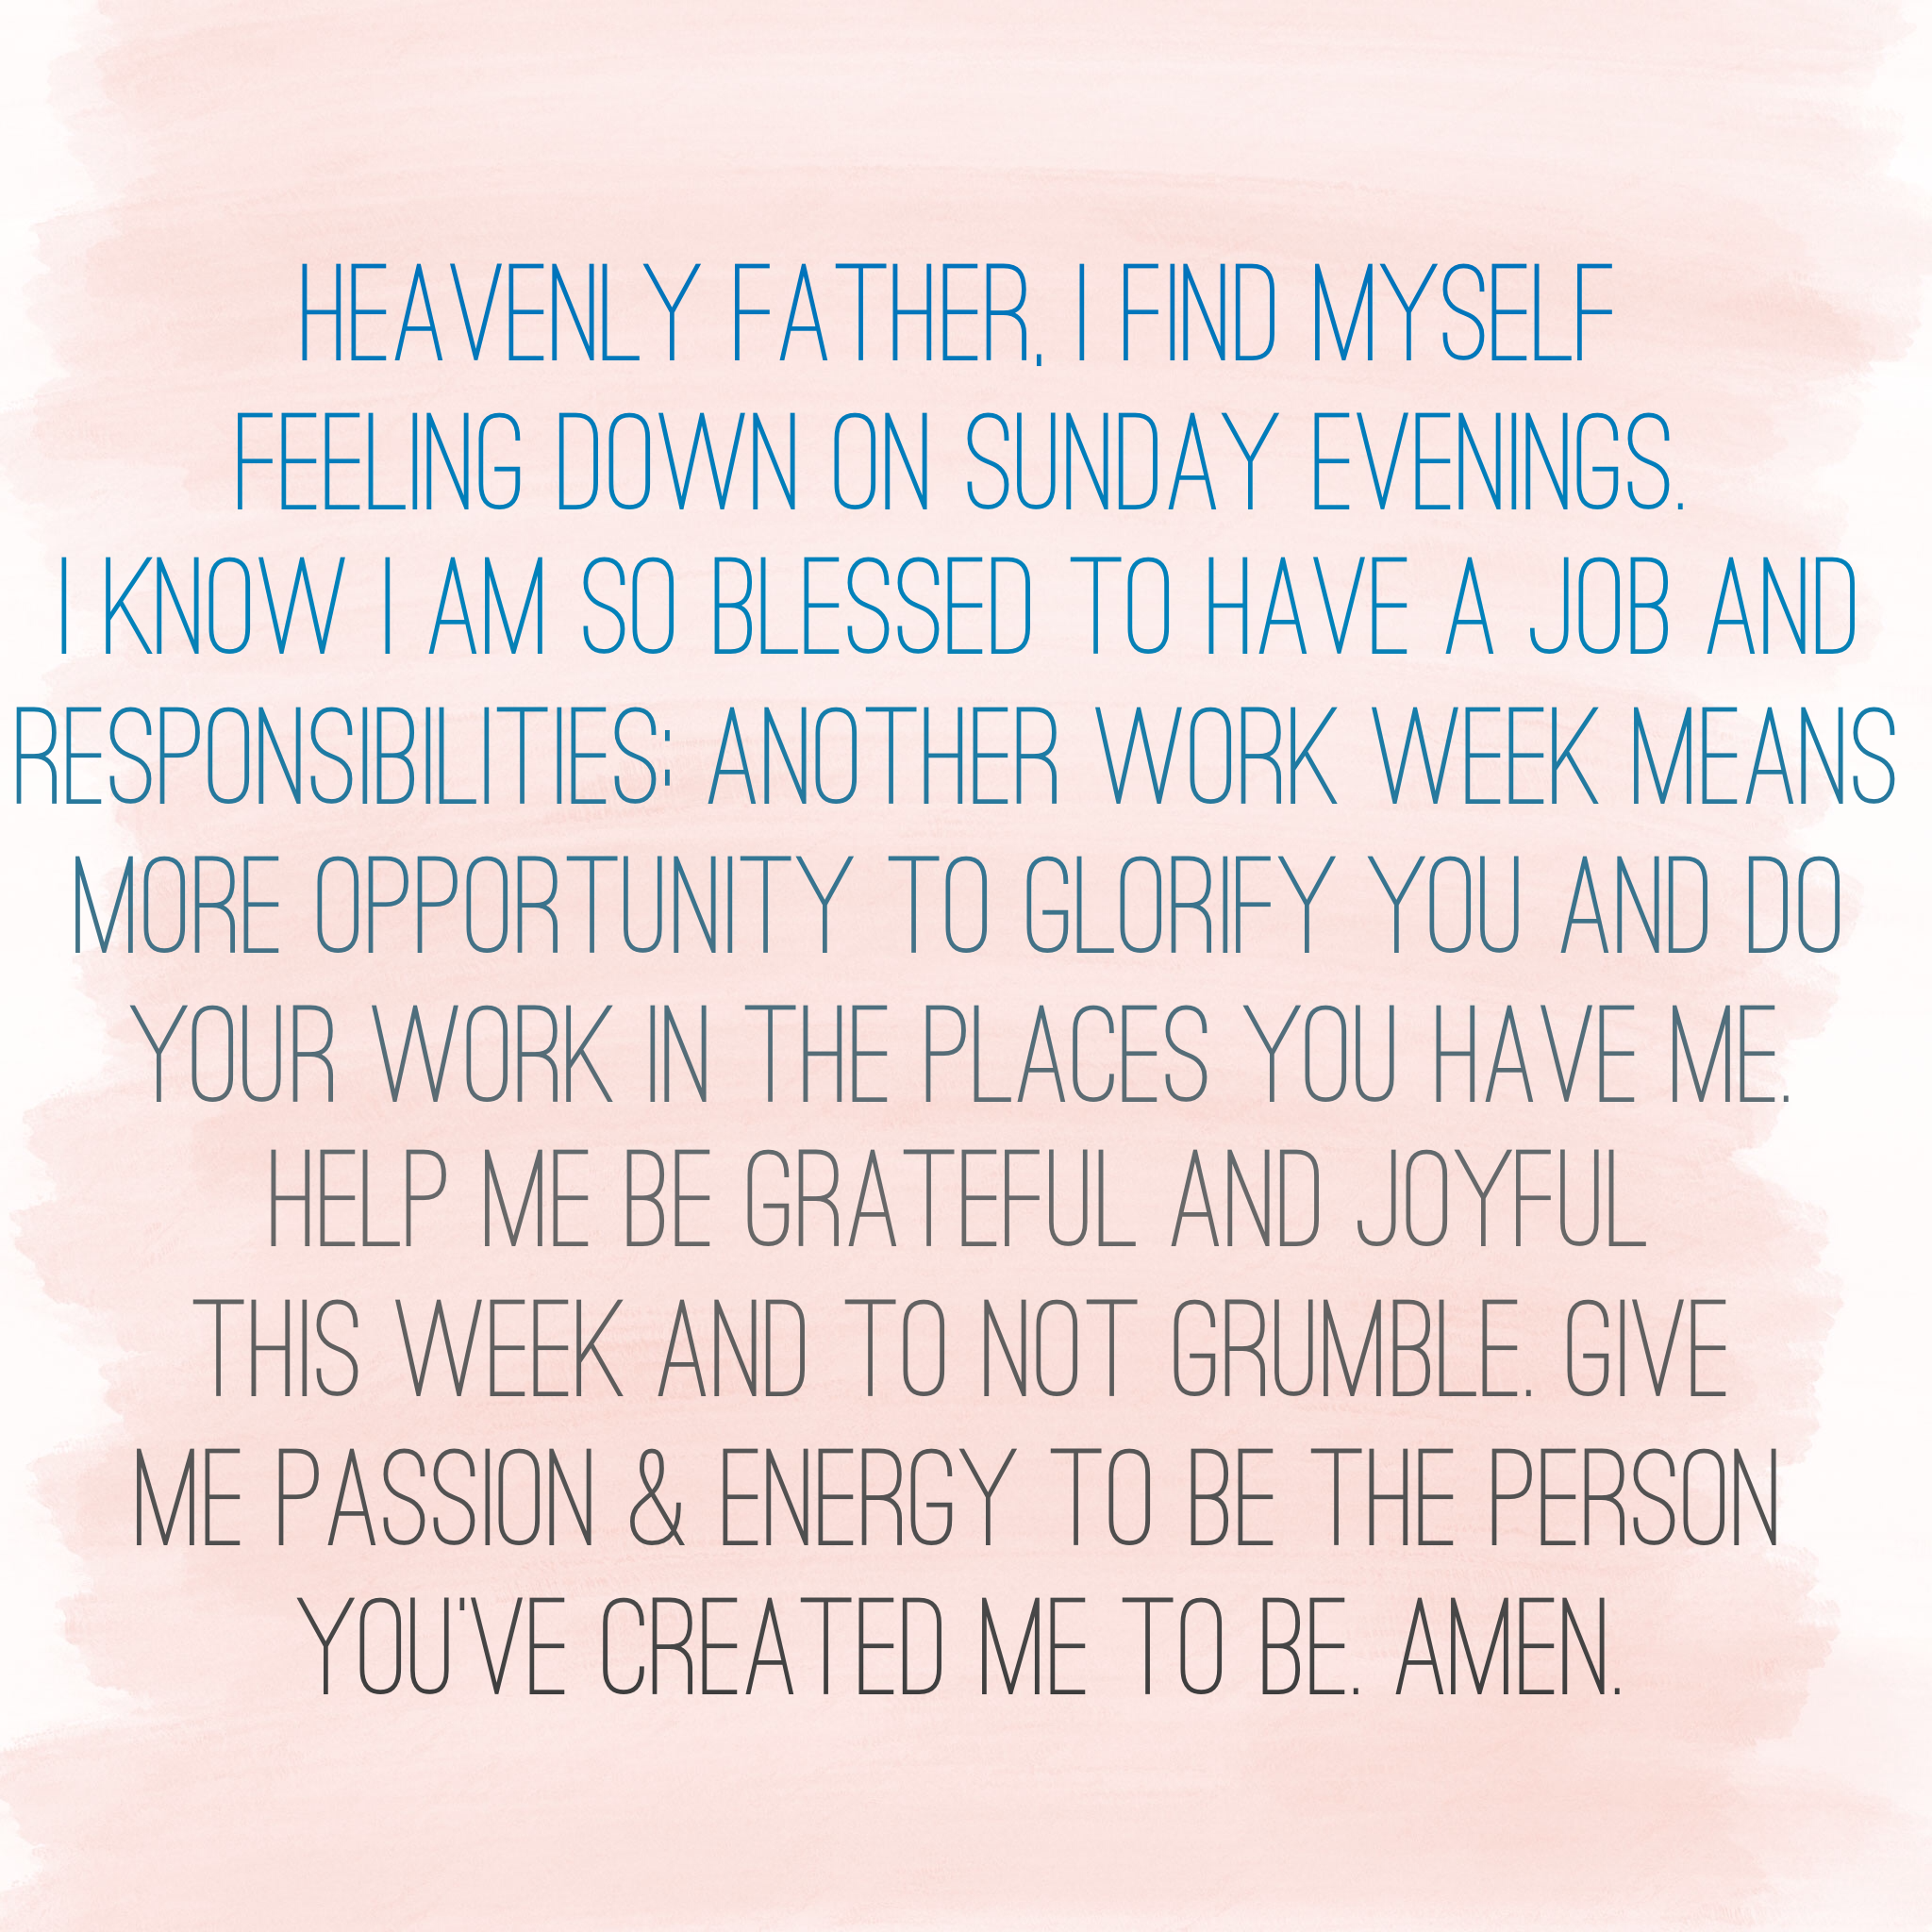 prayer for sunday evening. for joy, gratitude, passion, and